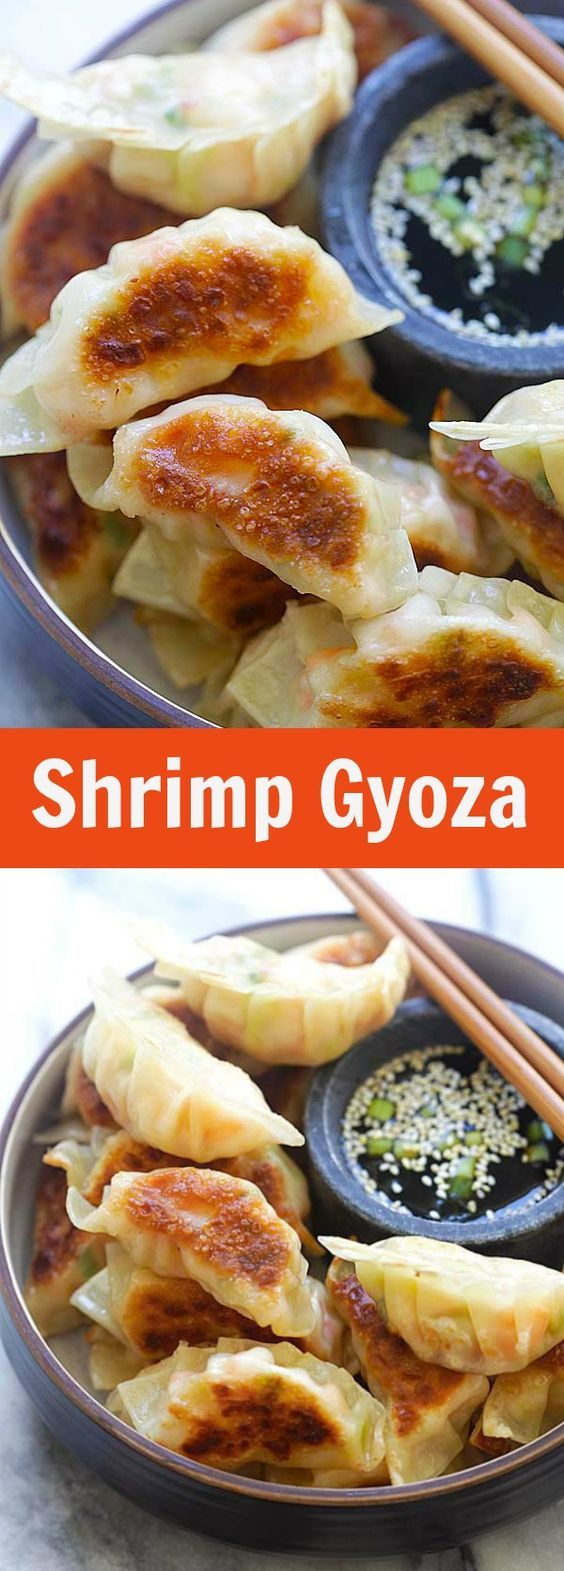 Shrimp Gyoza - amazing Japanese gyoza dumplings filled with shrimp and cabbage. Crispy, juicy and so easy to make at home. | rasamalaysia.com